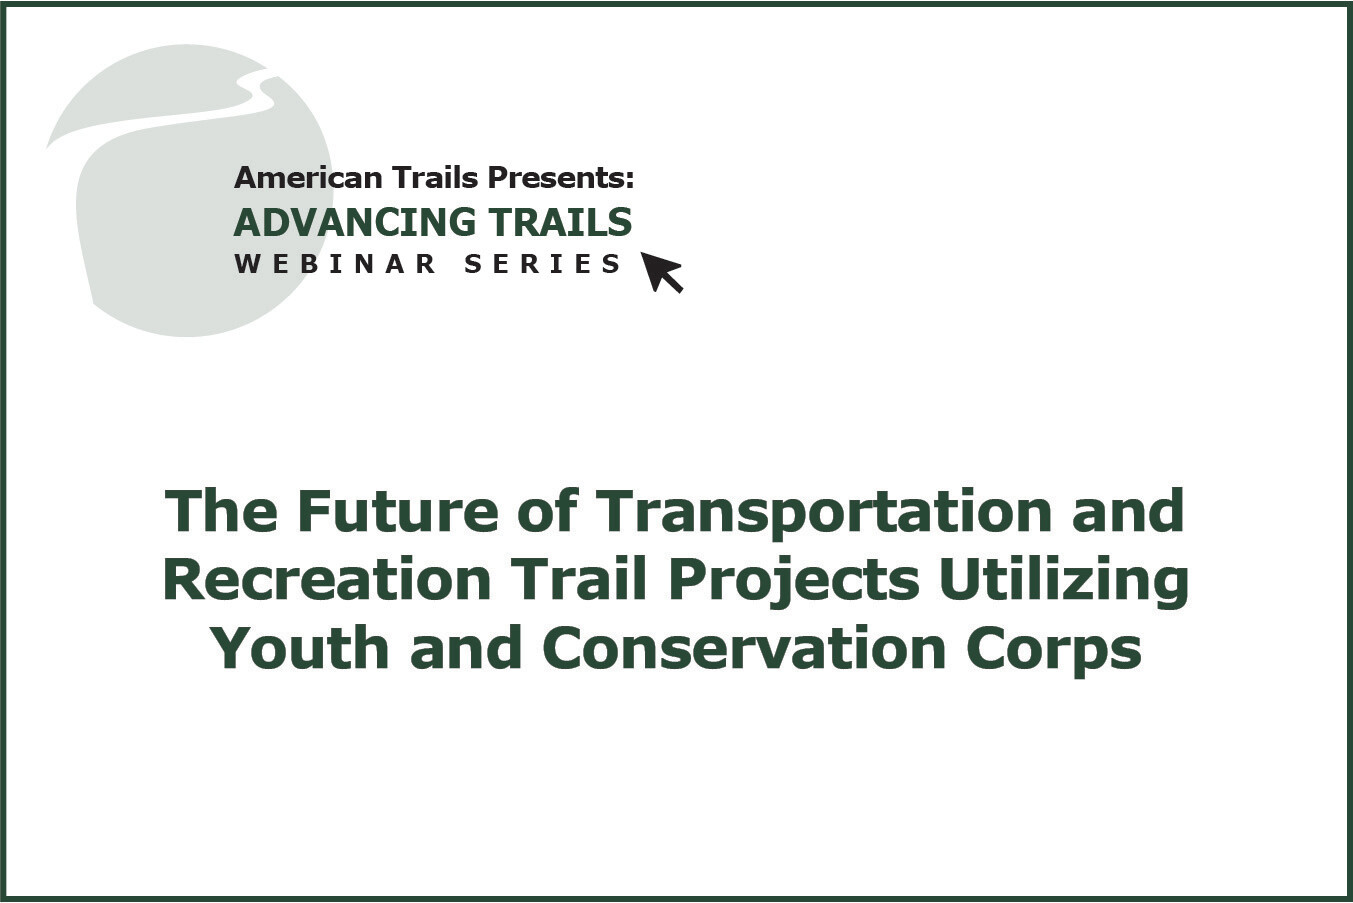 The Future of Transportation and Recreation Trail Projects Utilizing Youth and Conservation Corps (RECORDING)